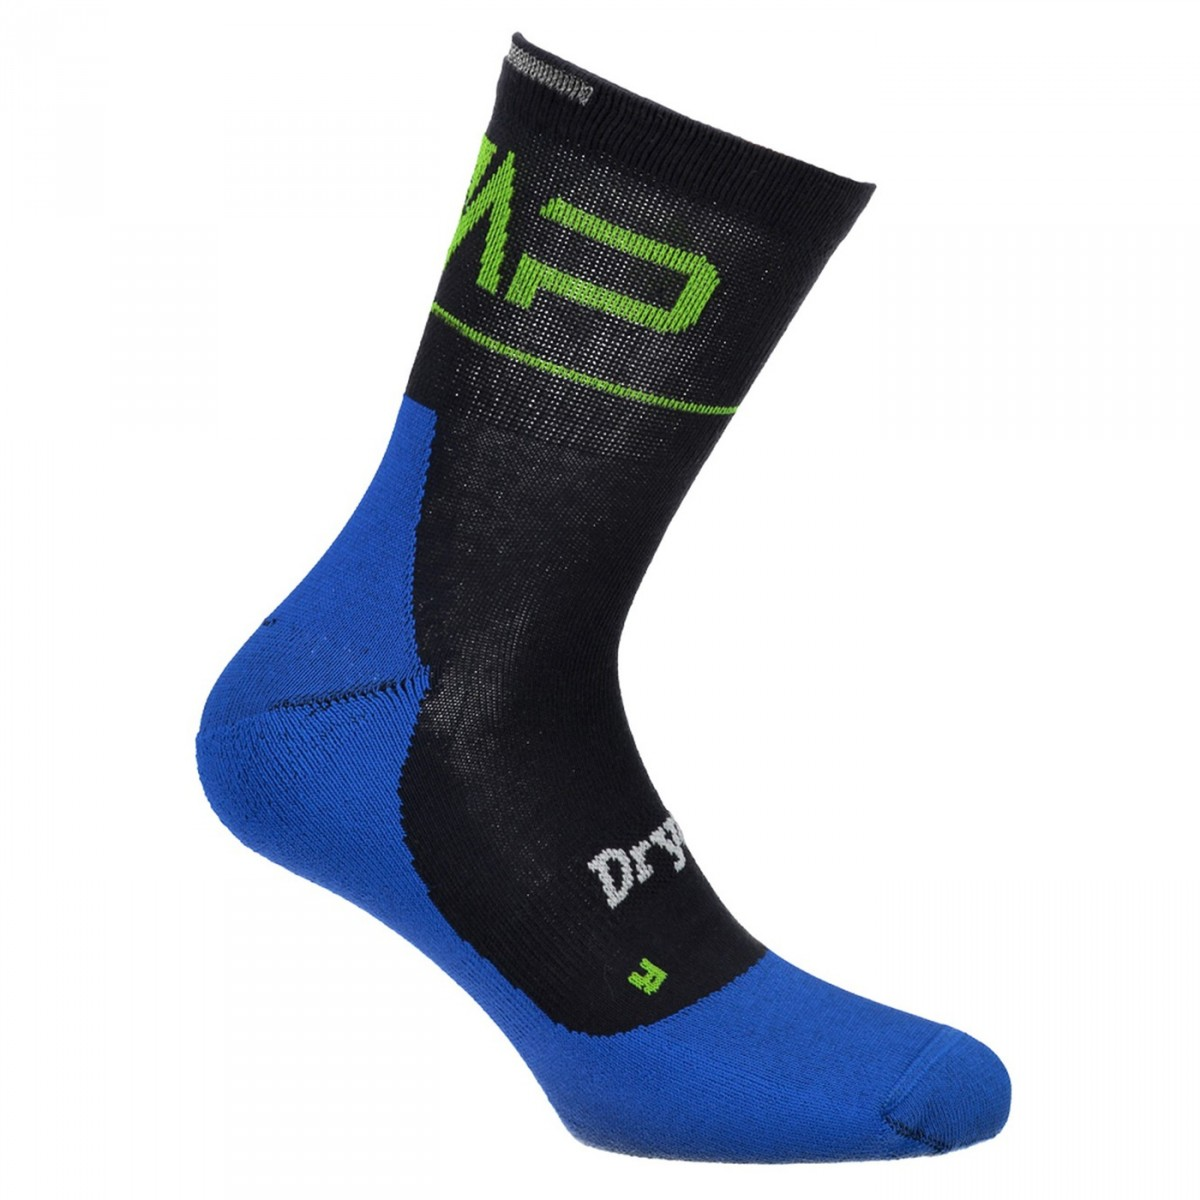 Trail Running Socks Cmp Marco Olmo Outdoor And Trekking